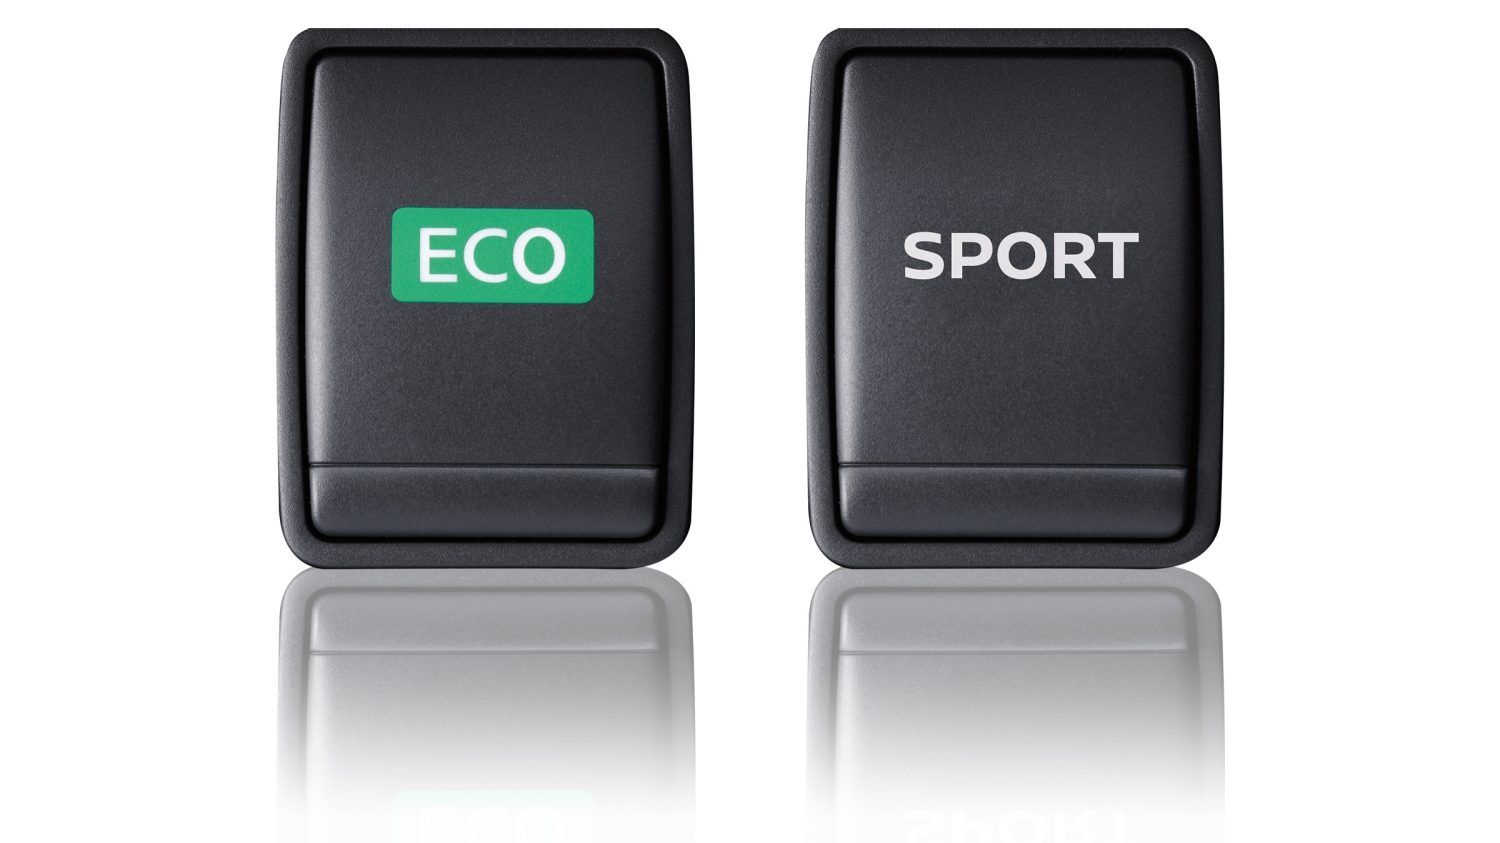 Qashqai Eco mode and Sport mode buttons